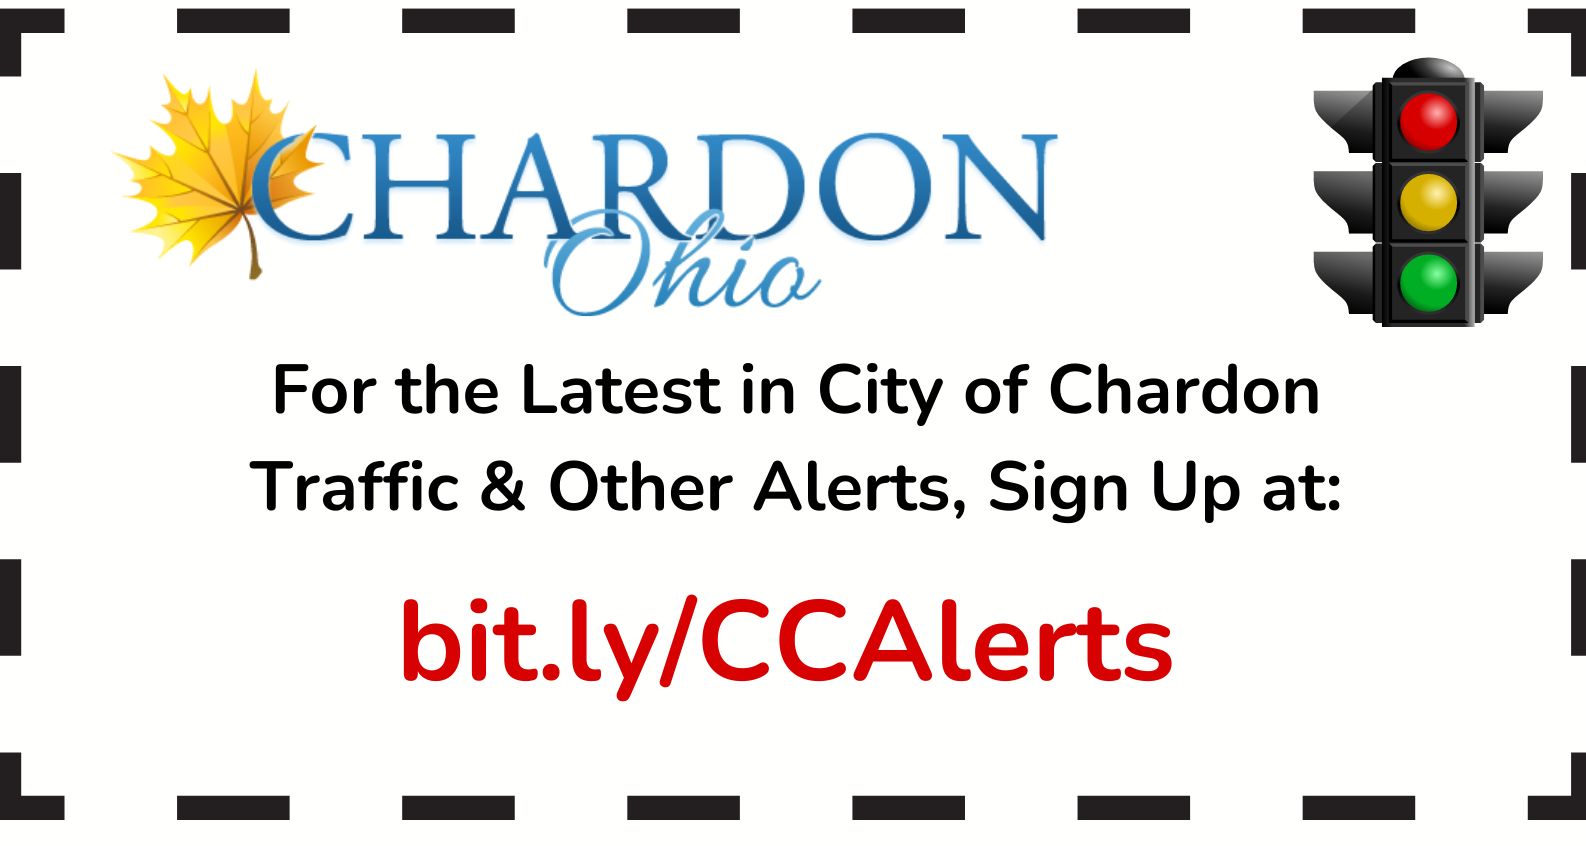 Clickable Image that will take user to the City of Chardon Traffic/Other Alerts Signup Page;Graphic featuring the City of Chardon Ohio maple leaf logo; traffic light clipart; and verbiage:  For the Latest in City of Chardon Traffic & Other Alerts, Sign Up at:  bit.ly/CCAlerts